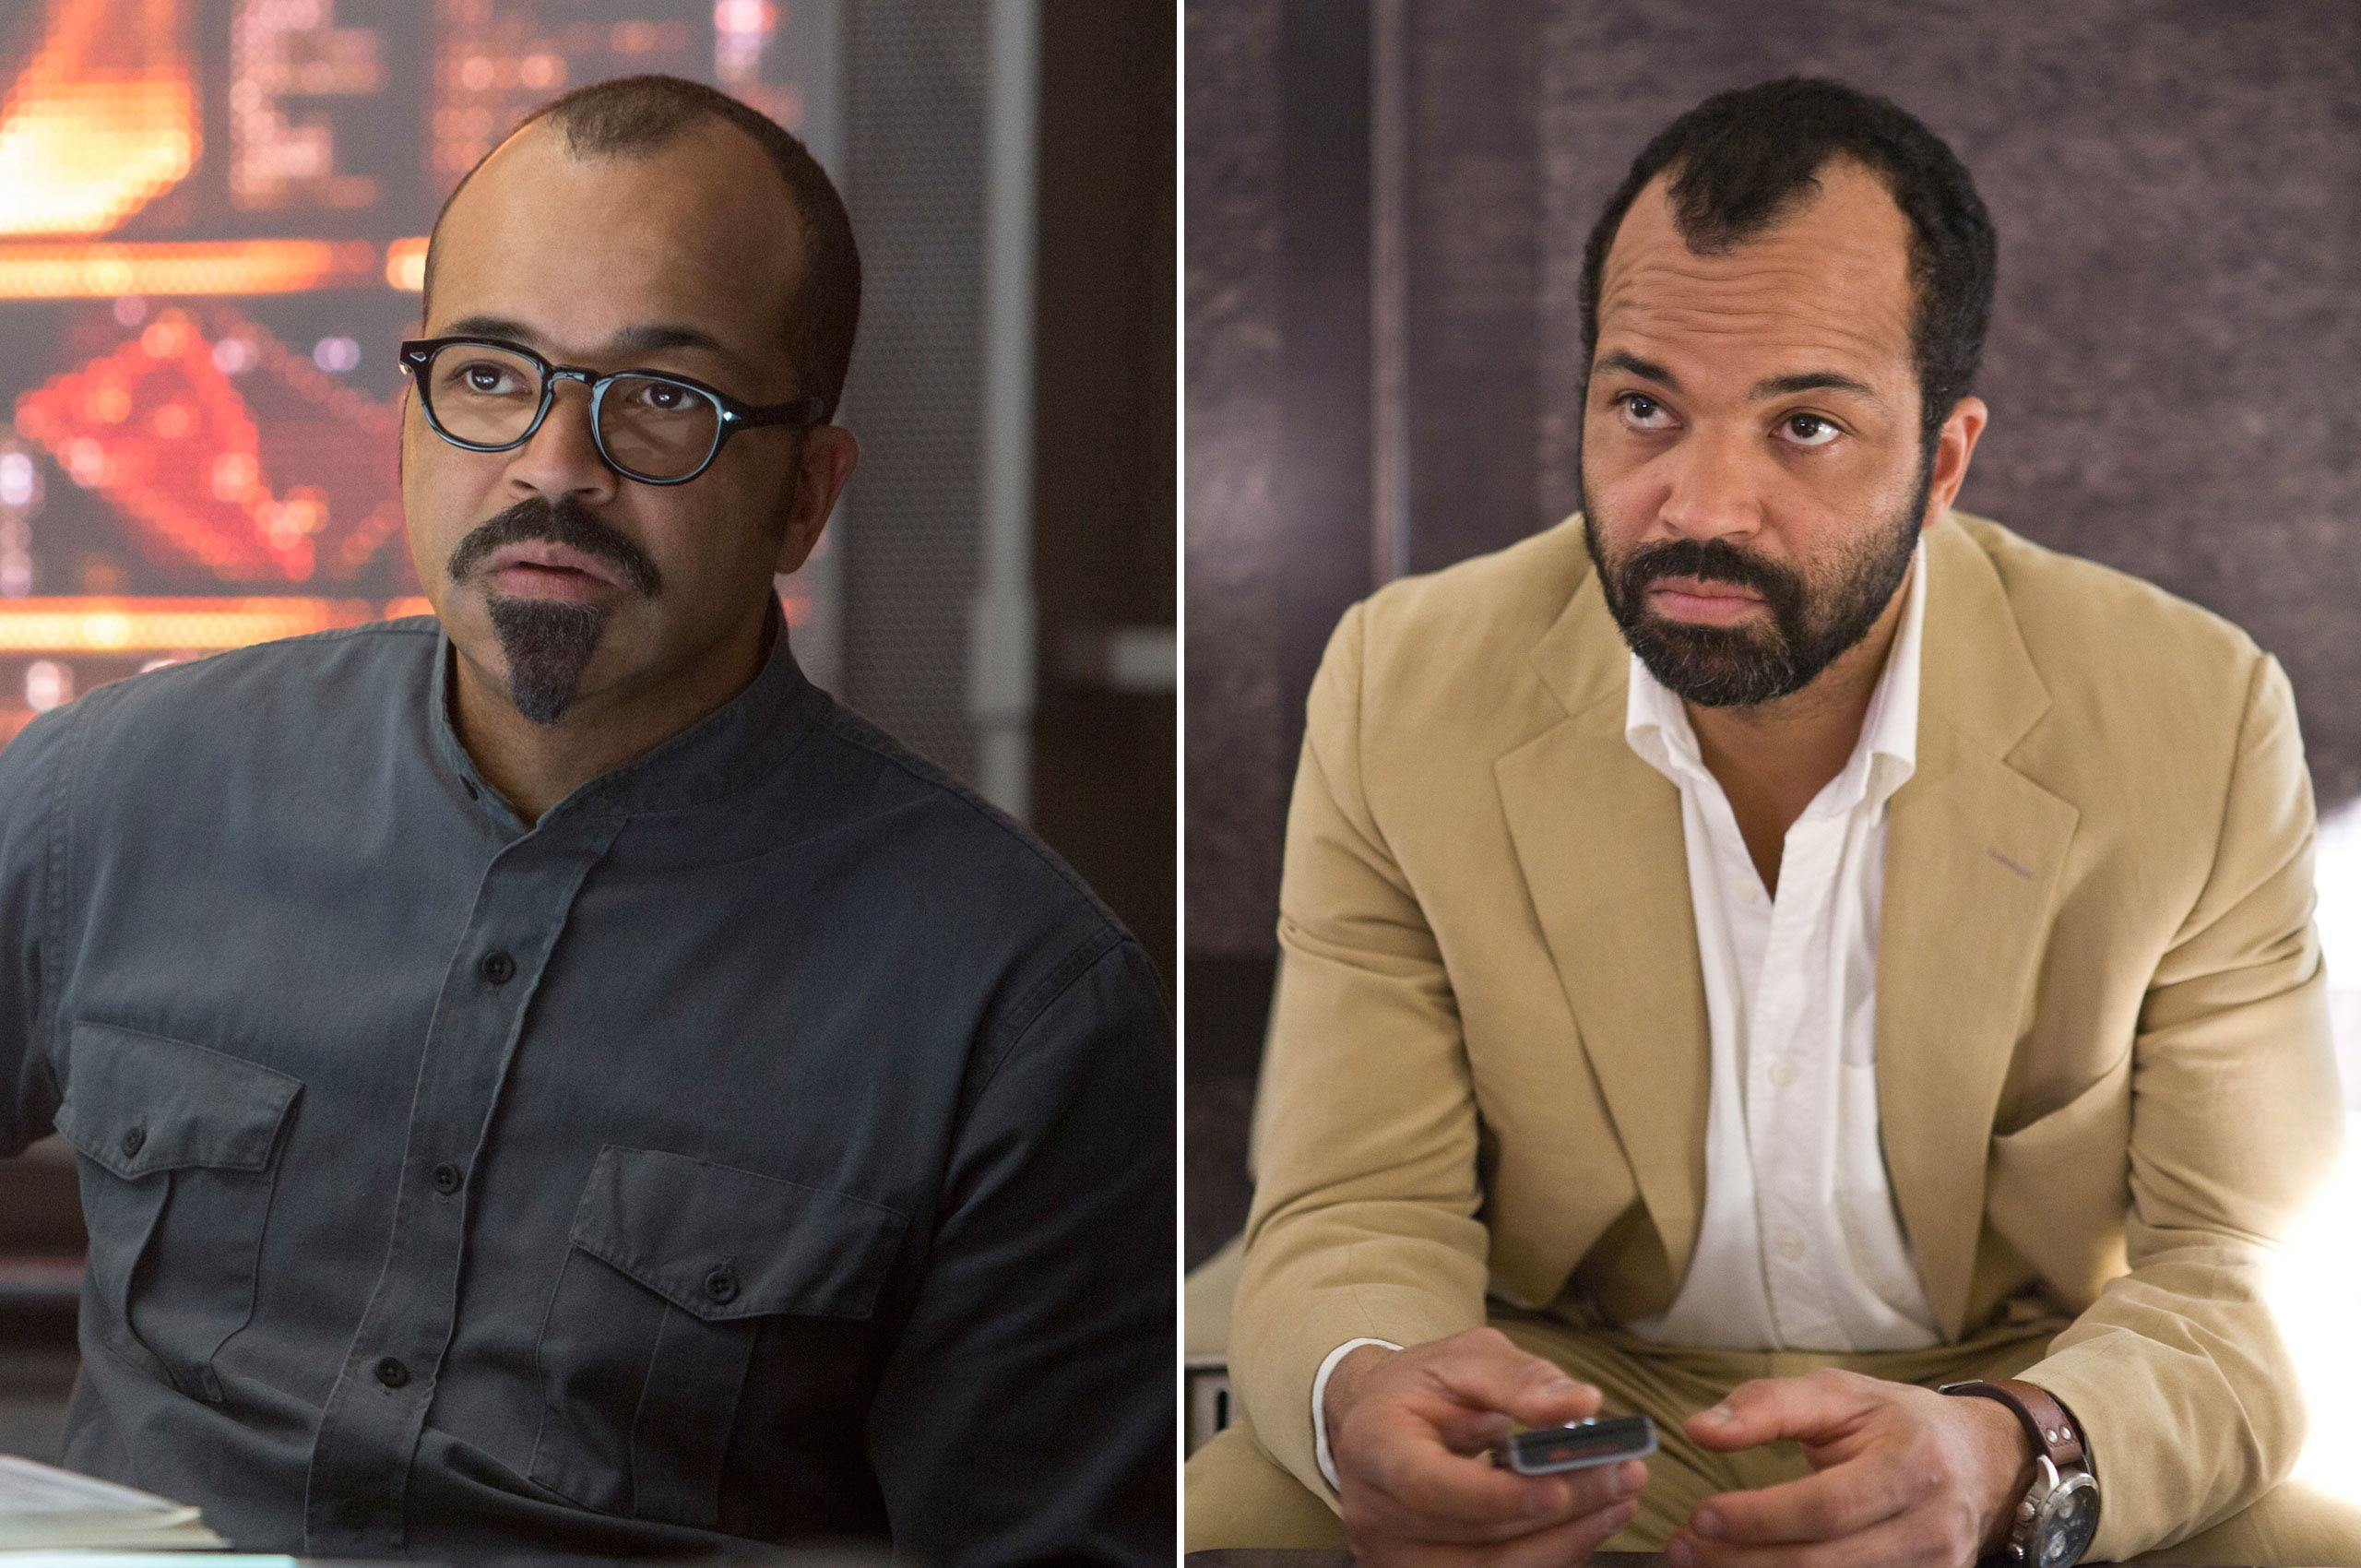 Jeffrey Wright portrays the genius inventor Beetee in the <i>Hunger Games</i> and also played CIA operative Felix Leiter in the James Bond movies <i>Casino Royale</i> and <i>Quantum of Solace</i>.